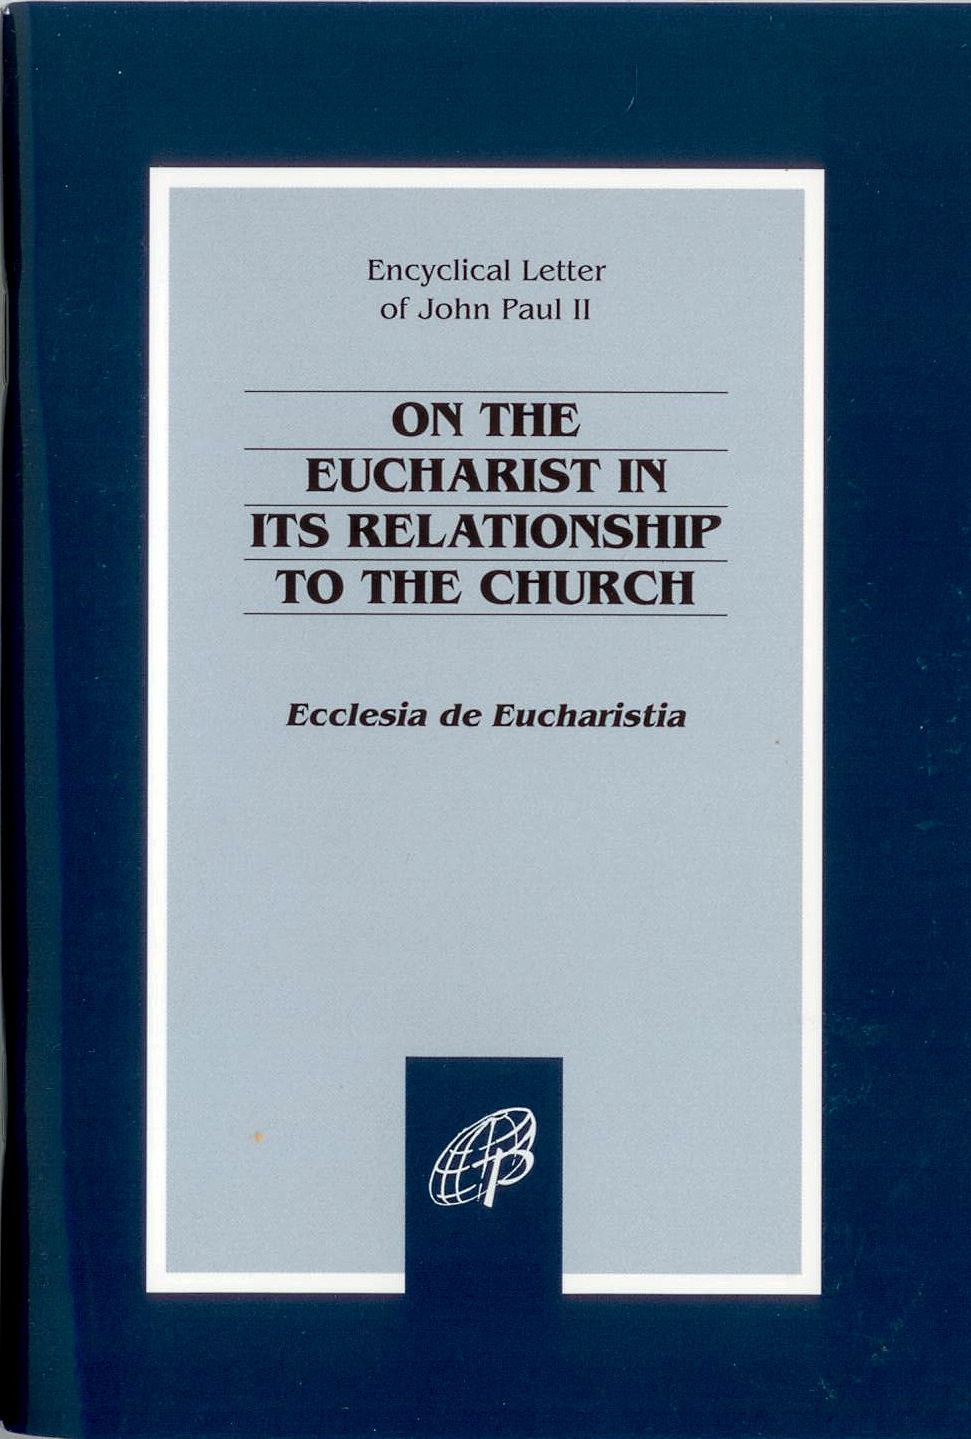 On The Eucharist In Its Relationship To The Church by John Paul II